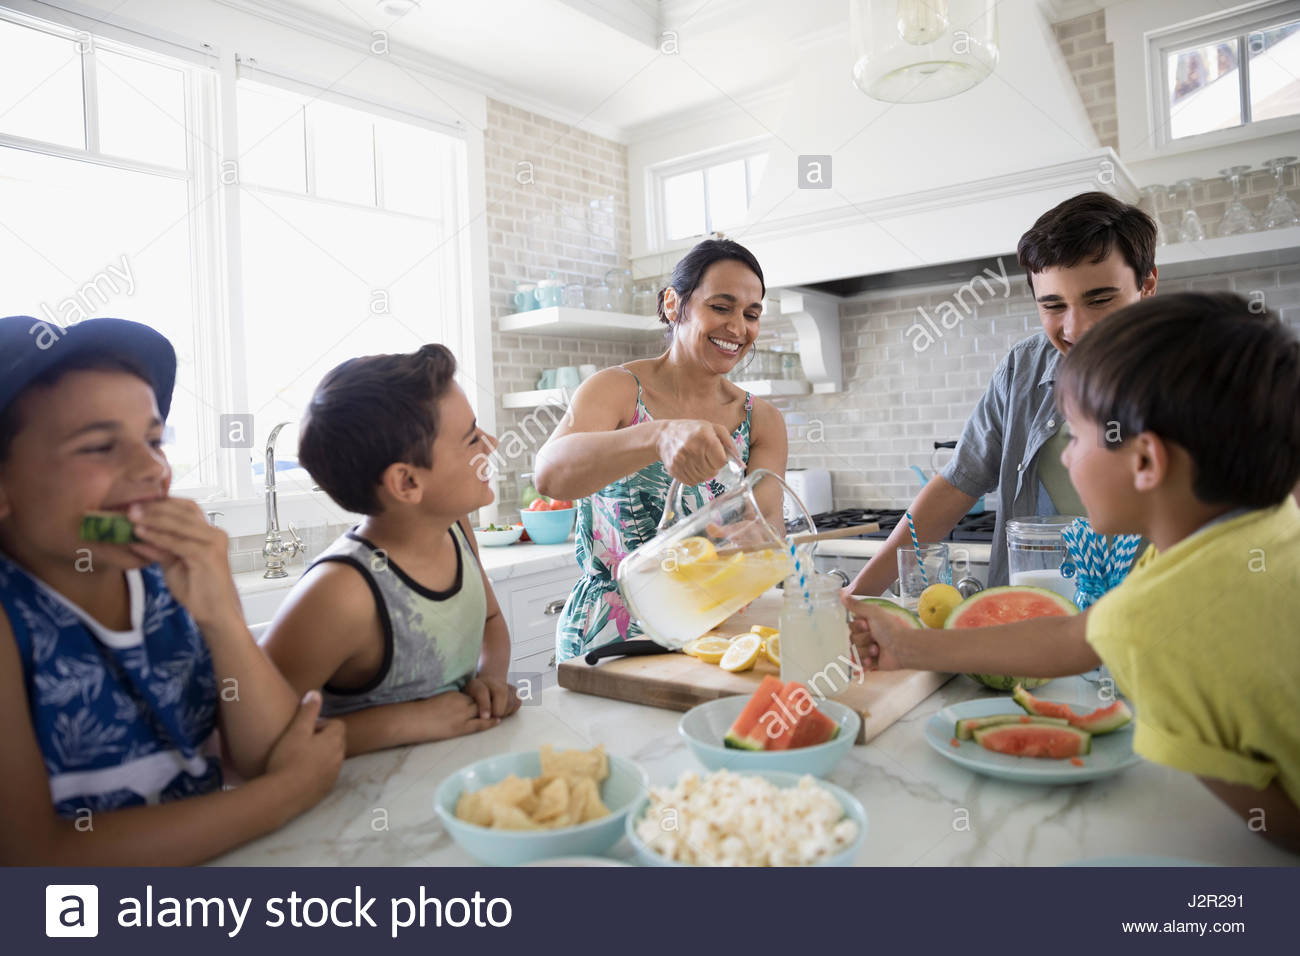 Mother pouring lemonade for sons in kitchen - Stock Image